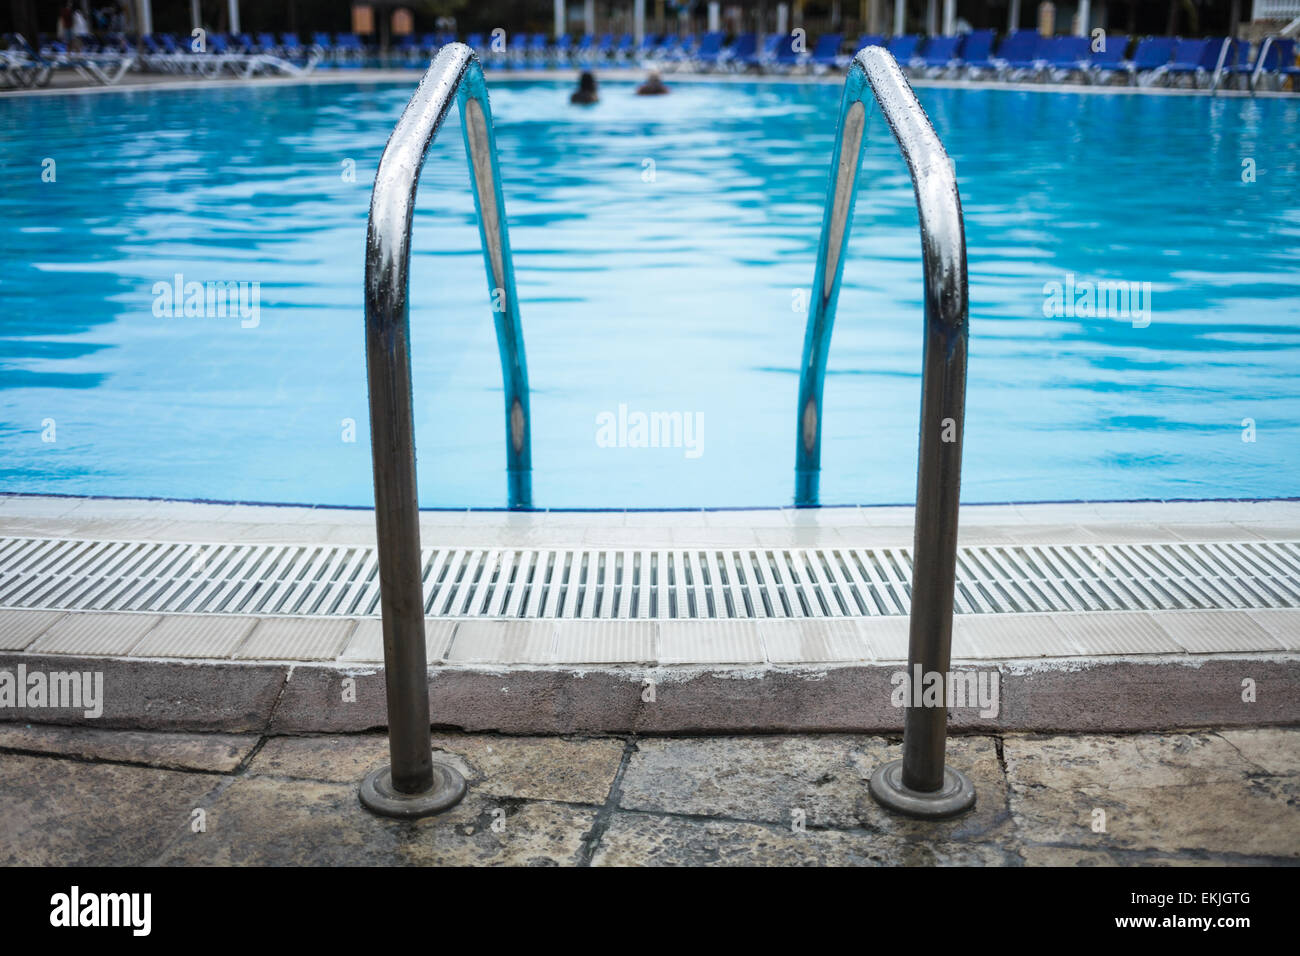 swimming pool background. Swimming Pool Ladder Close-up With Blurry People In Background - Stock Image Swimming Pool G